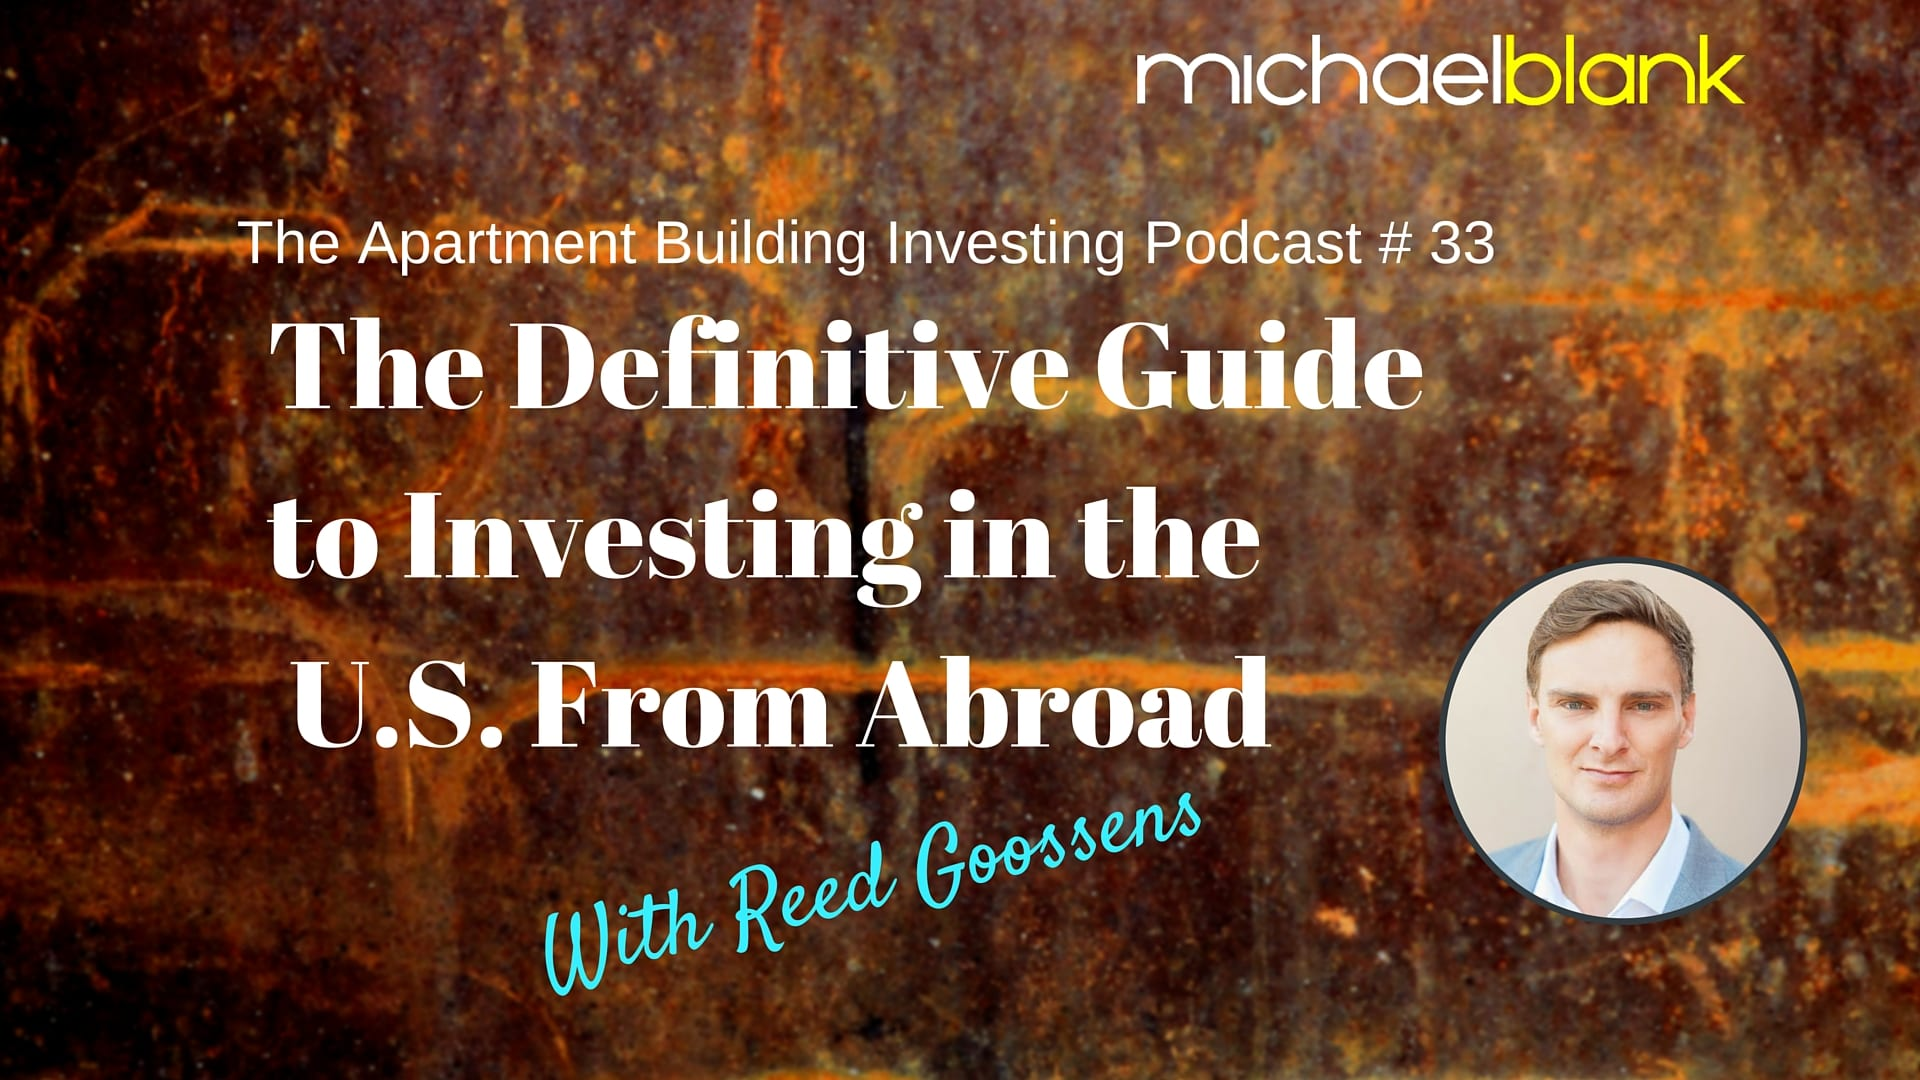 MB 033: The Definitive Guide to Investing in the U.S. From Abroad With Reed Goossens